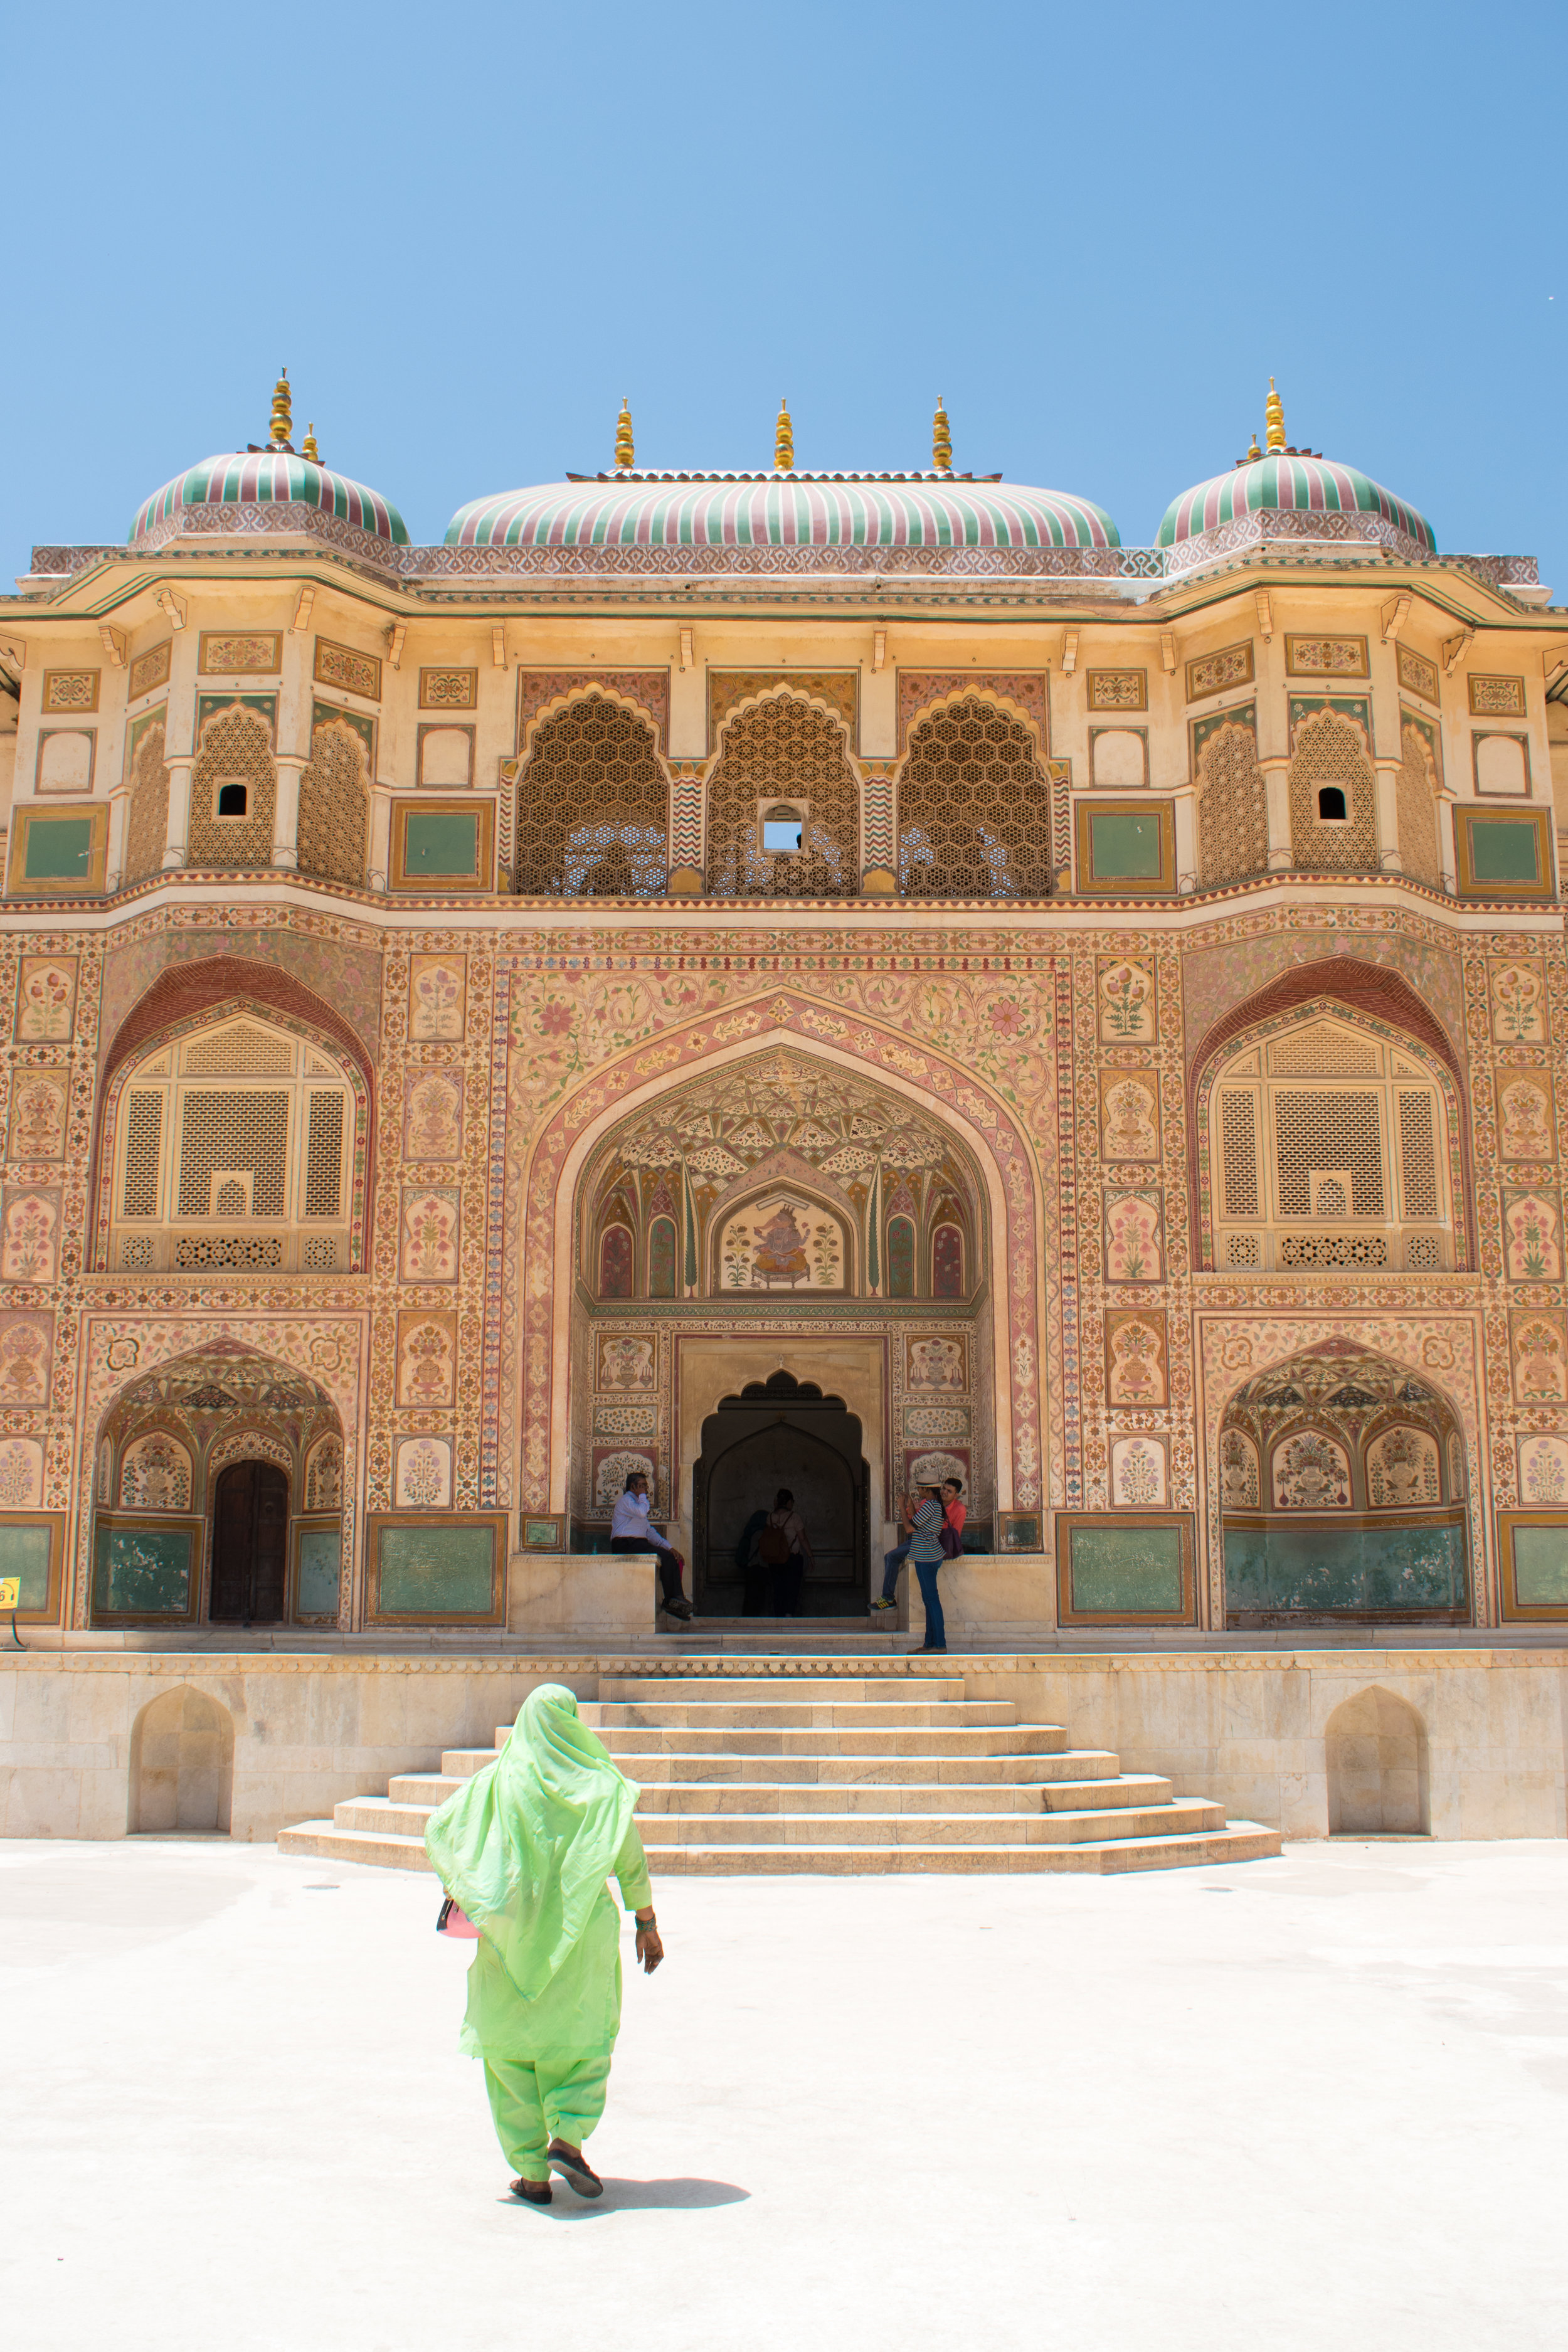 Bright Indian Dress and The Amber Fort in Jaipur, India